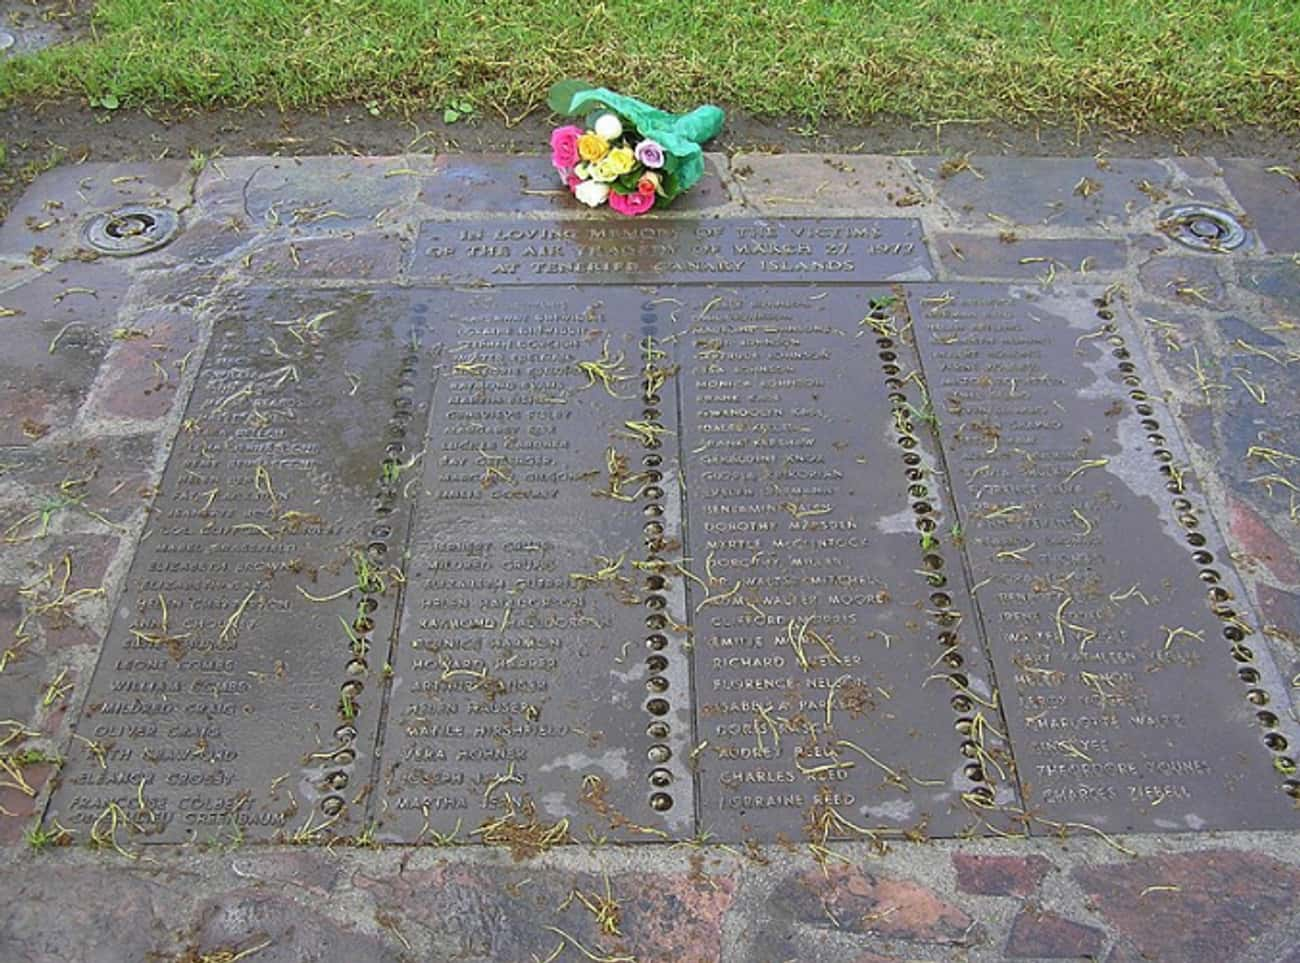 1977 Tenerife Airport Disaster is listed (or ranked) 2 on the list The Worst Plane Crashes in History